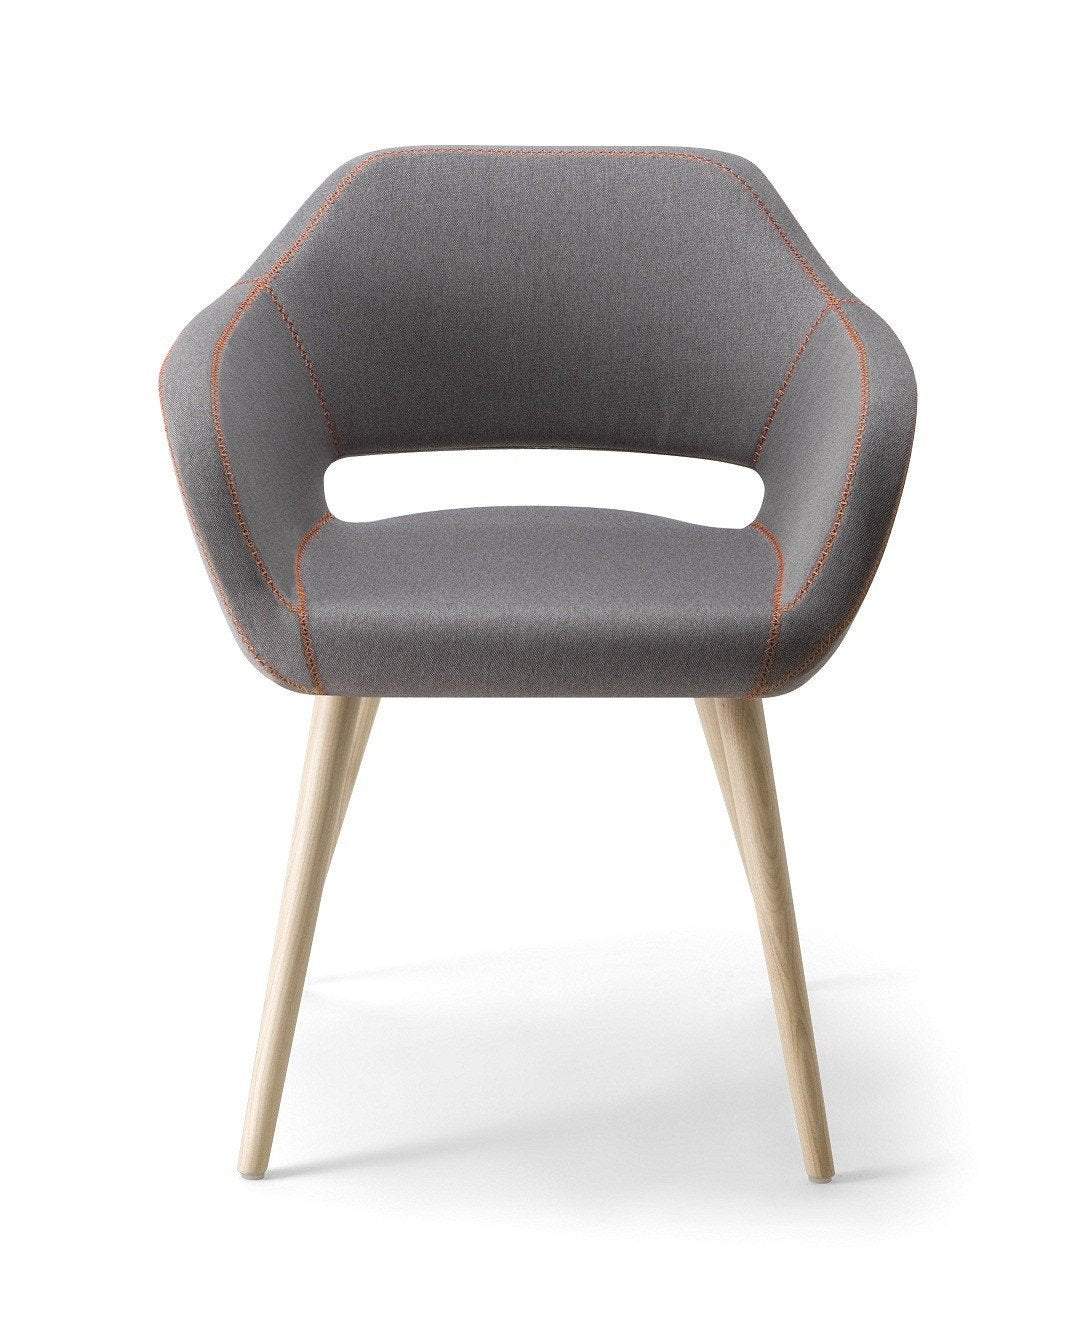 Manu 04 Armchair c/w Wood Legs-Torre-Contract Furniture Store